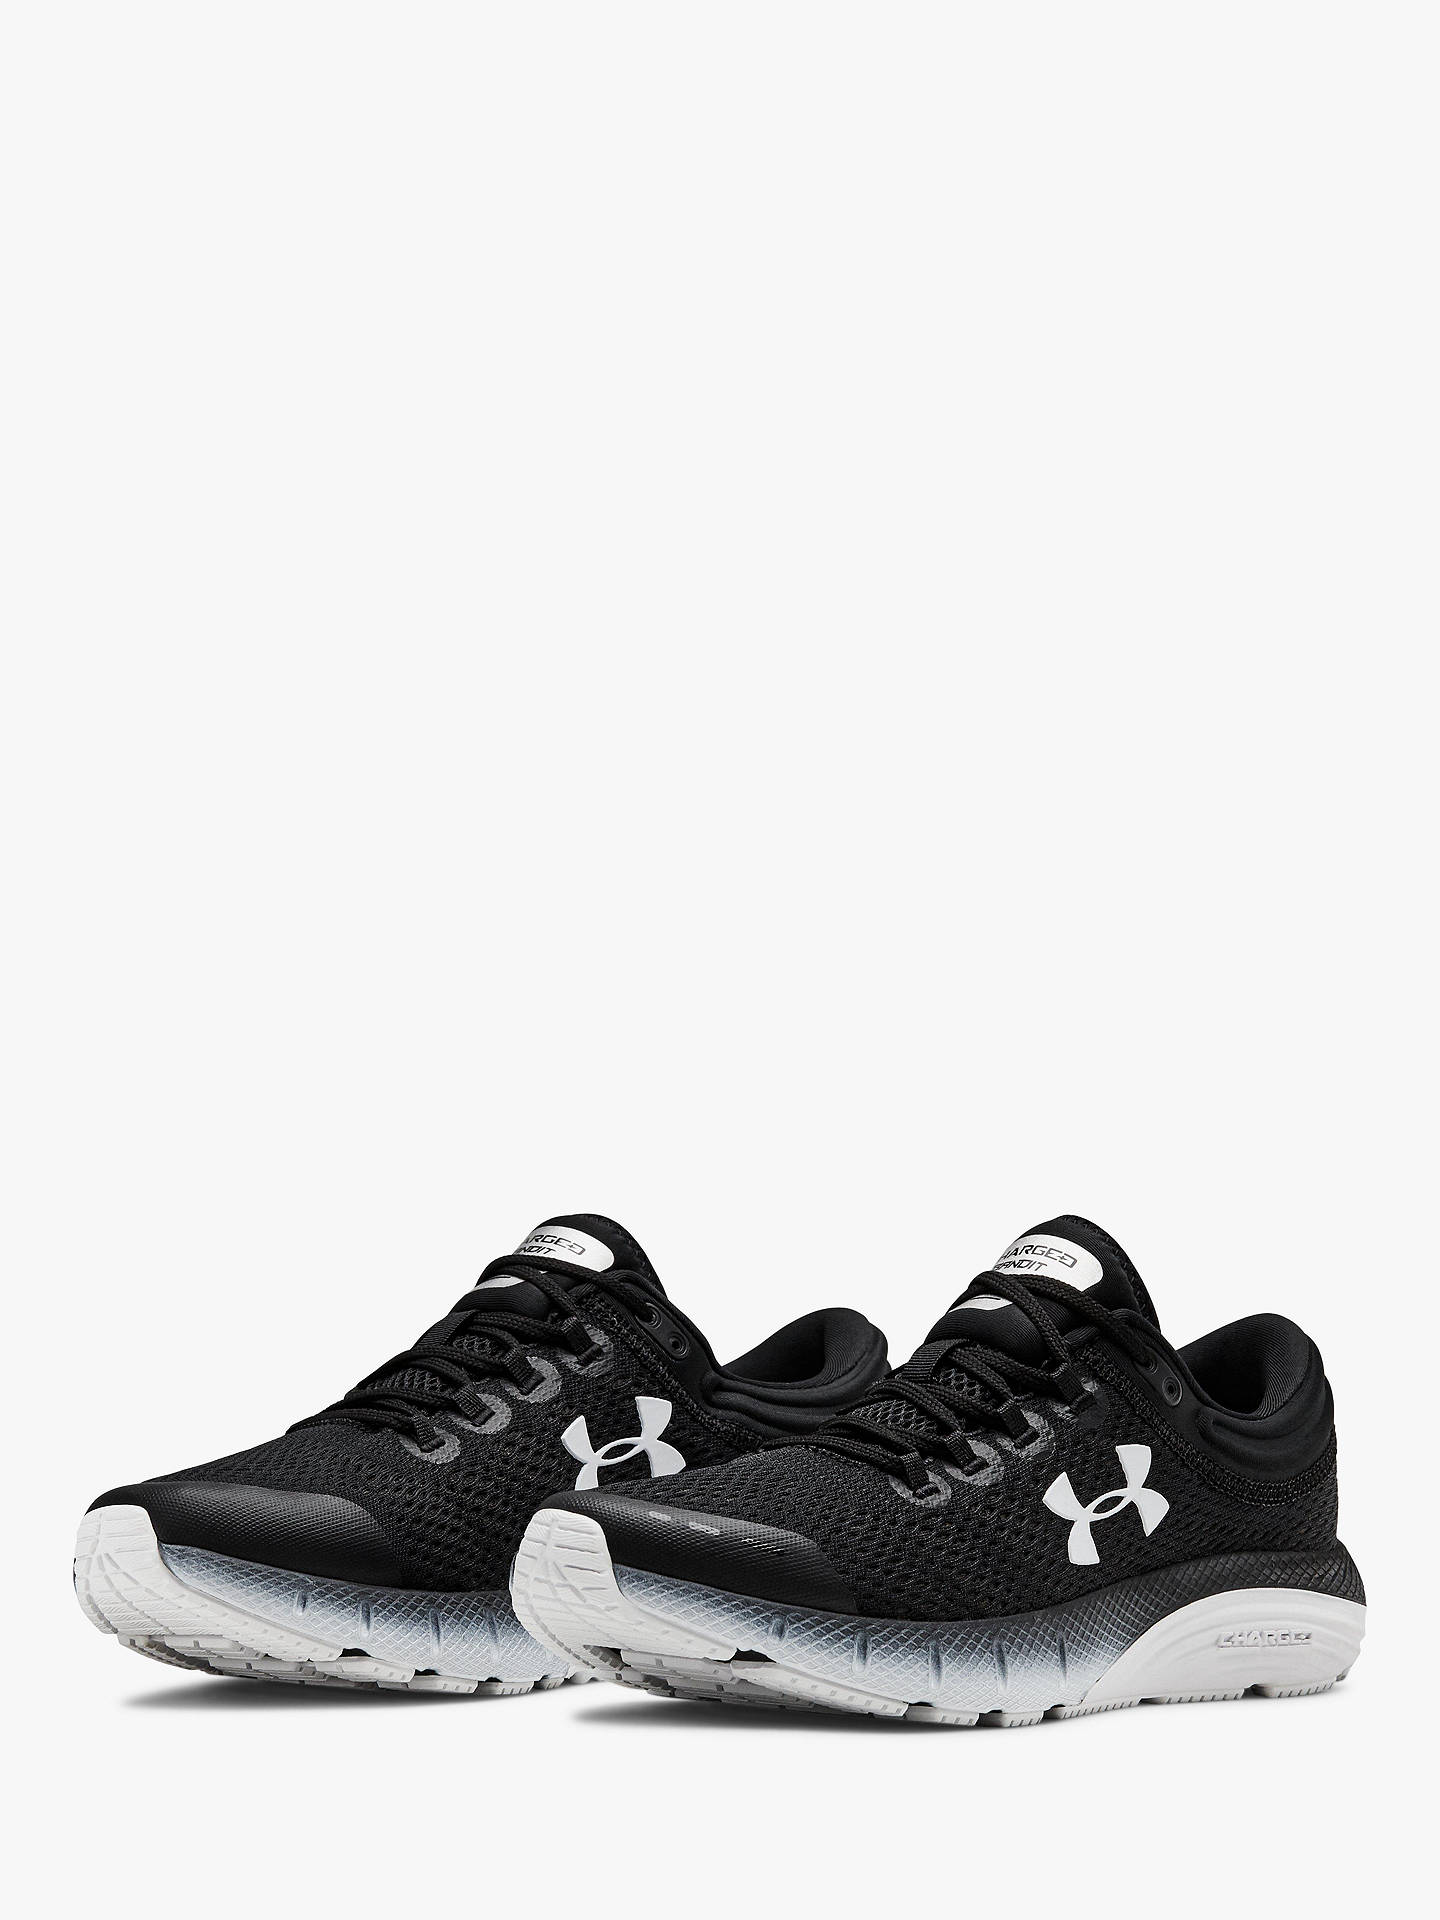 official photos 93508 e71eb Under Armour Charged Bandit 5 Women's Running Shoes, Black/White